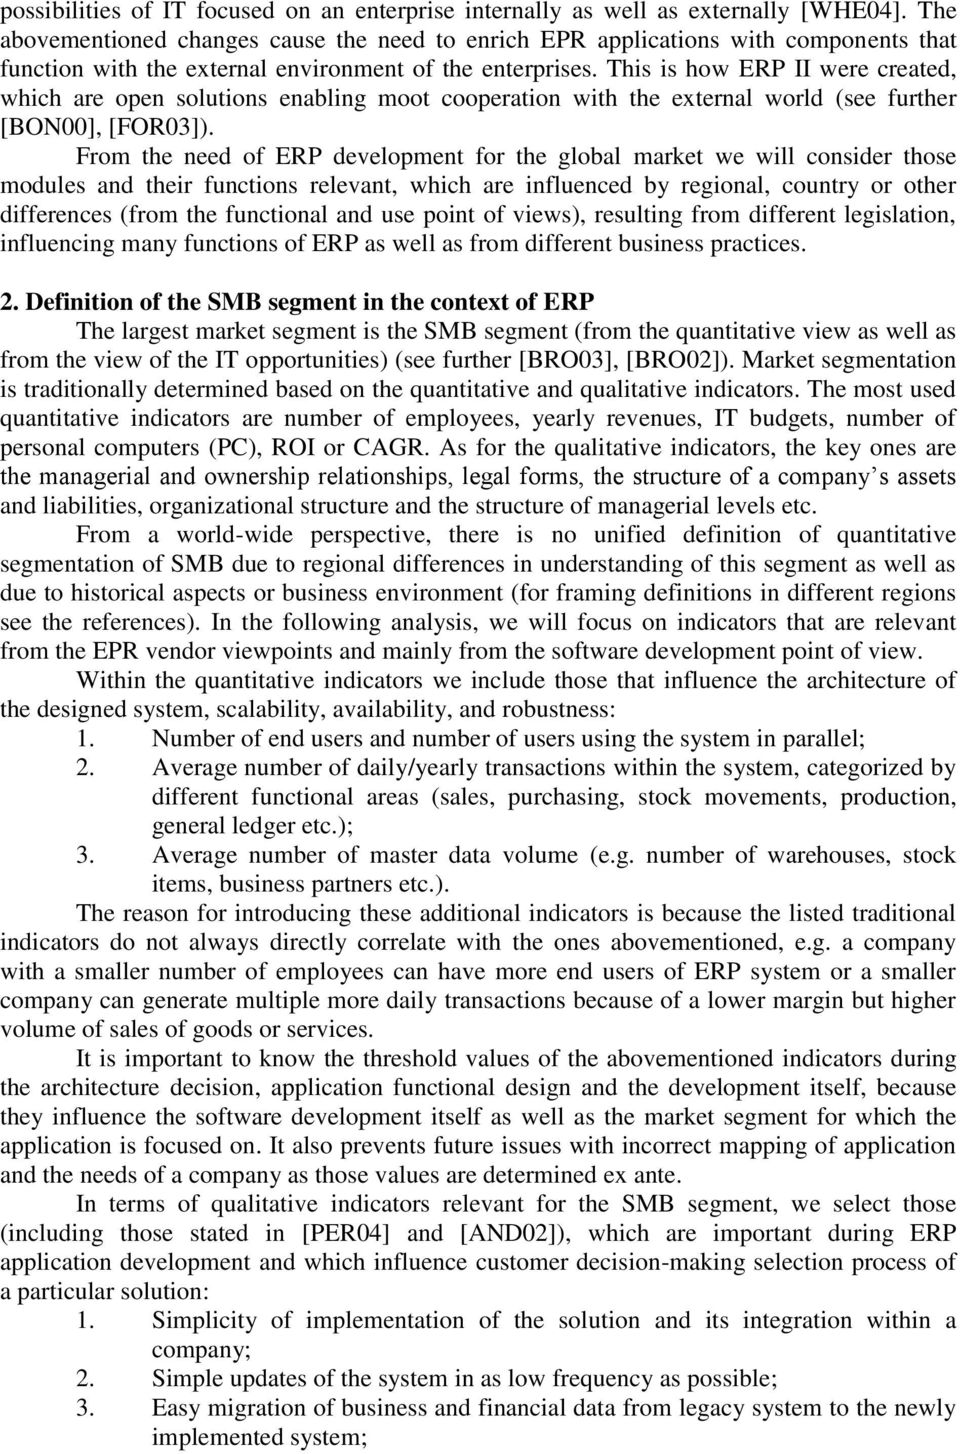 This is how ERP II were created, which are open solutions enabling moot cooperation with the external world (see further [BON00], [FOR03]).